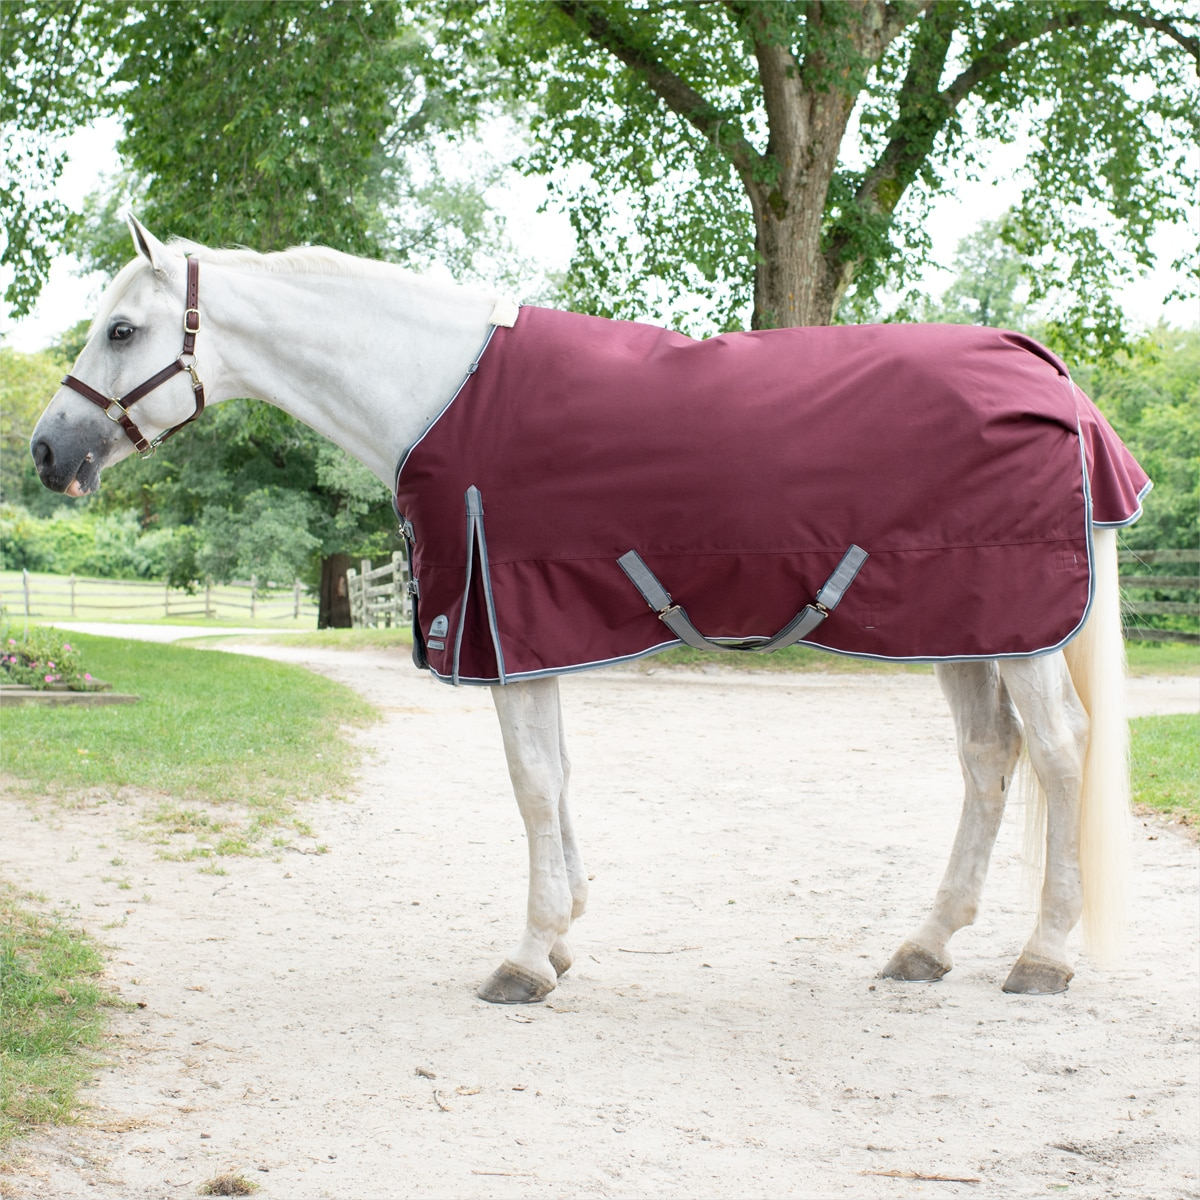 10 Pairs of WHITE//GREY//BEIGE Second Hand Leg Straps for Horse Rugs